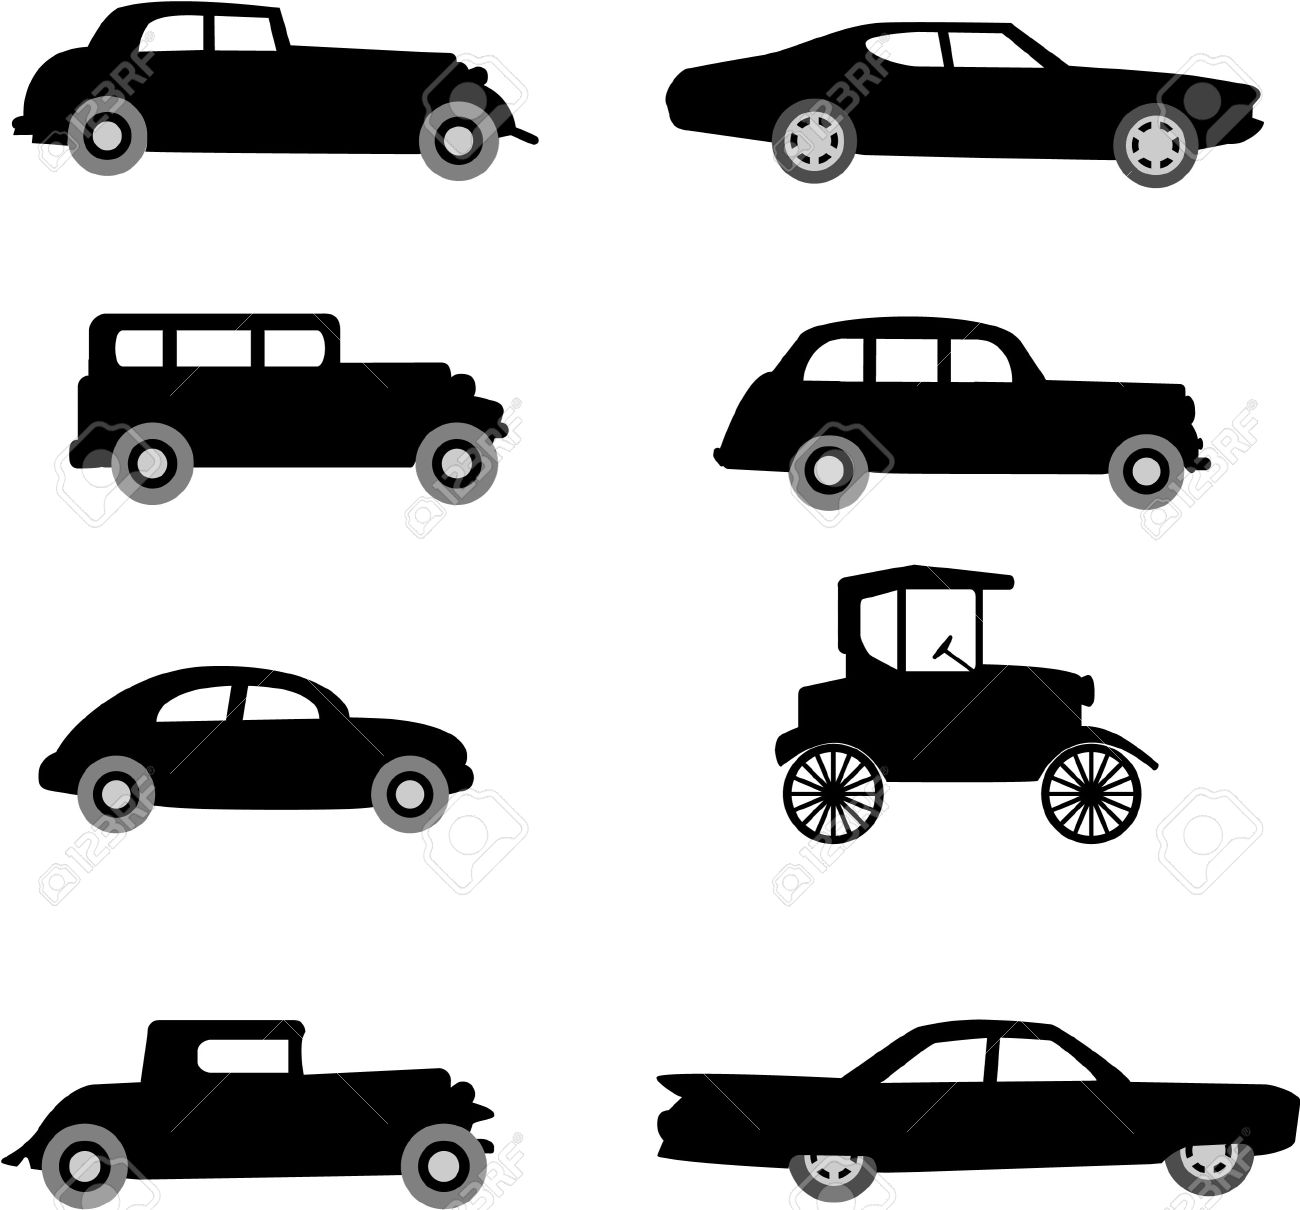 Old Timer Cars Vector Illustration Royalty Free Cliparts, Vectors.